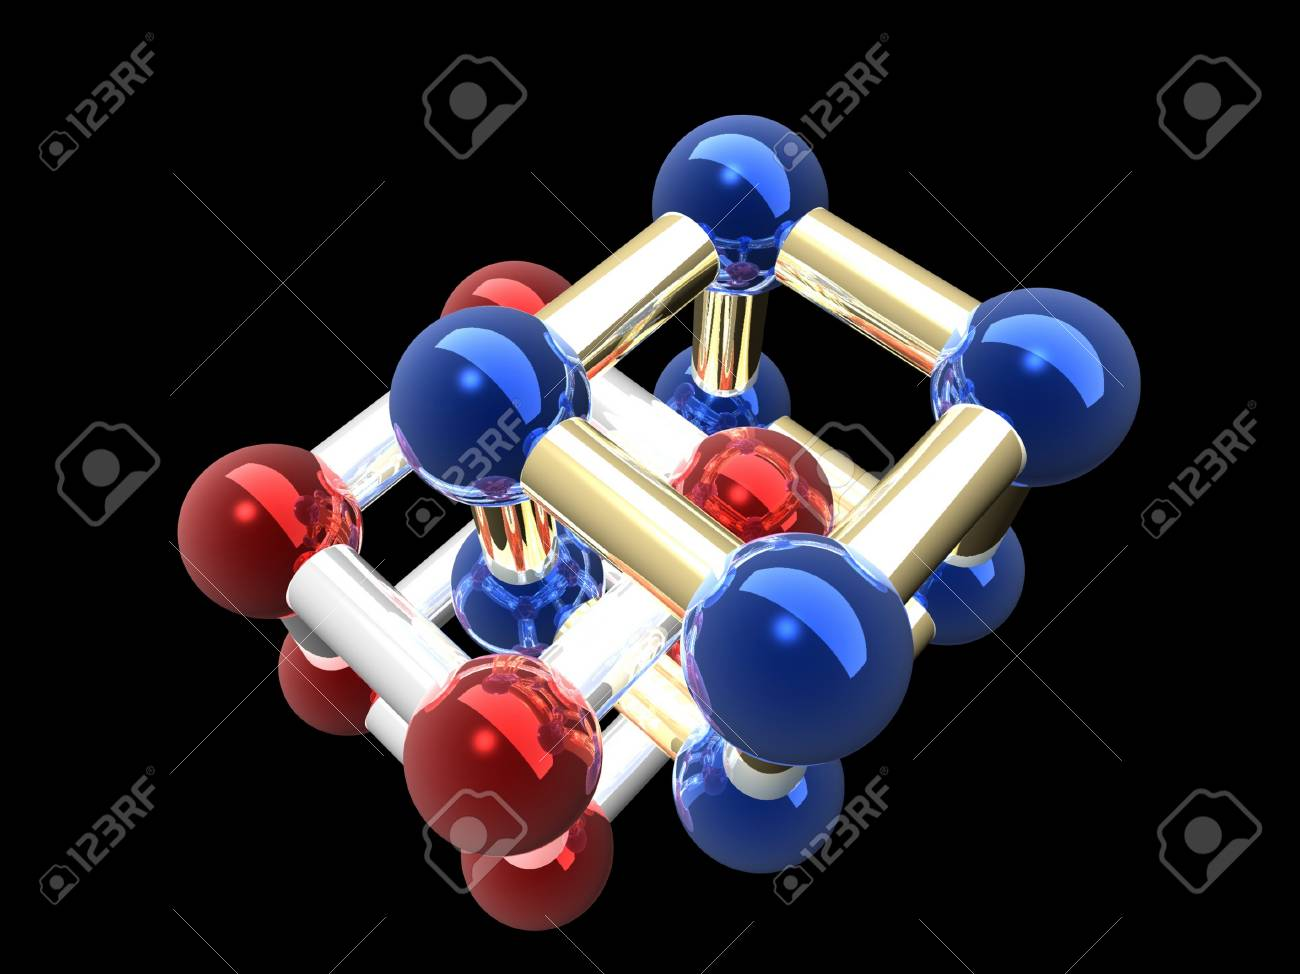 �rystalline lattice of molecule, 3D render. Stock Photo - 22091520